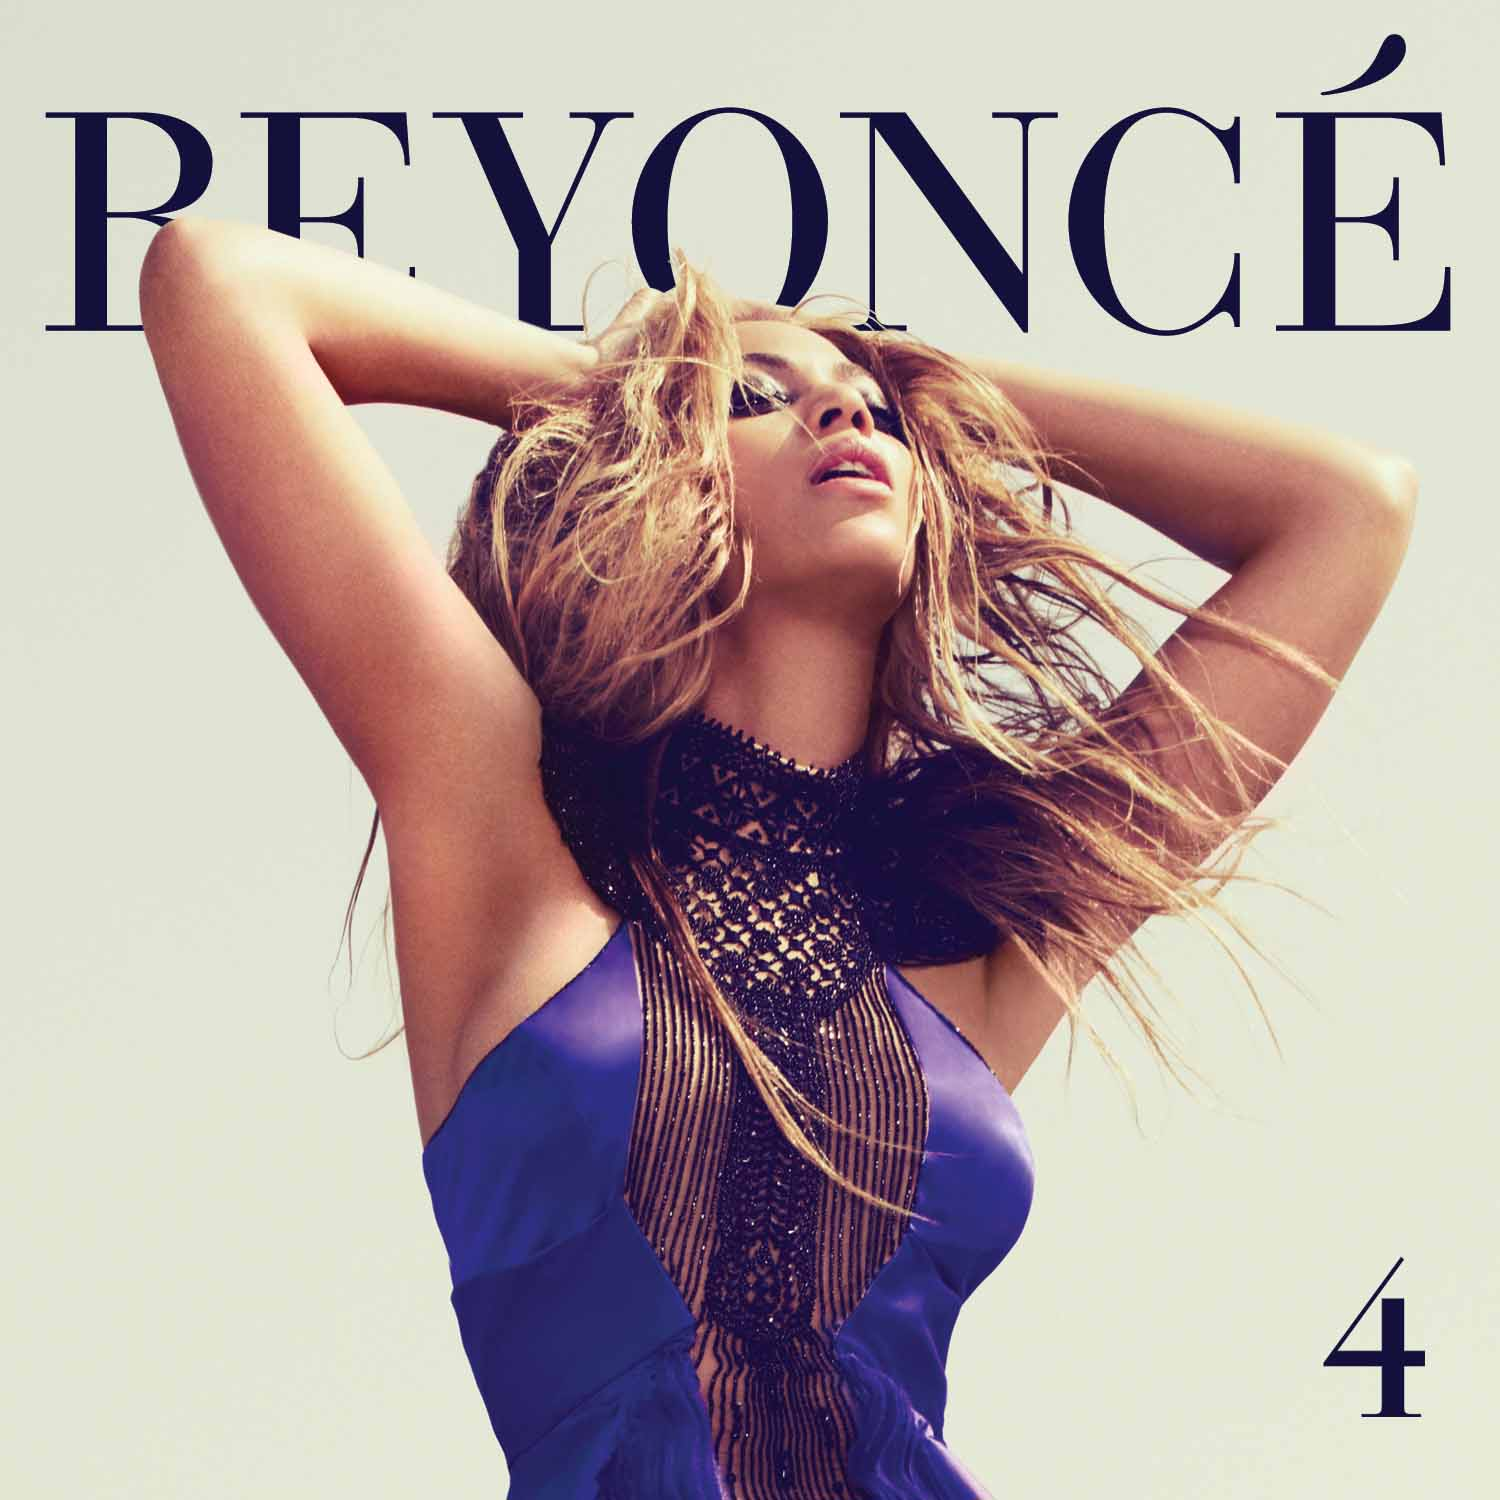 Beyonce (apest) full album & video hd for android apk download.